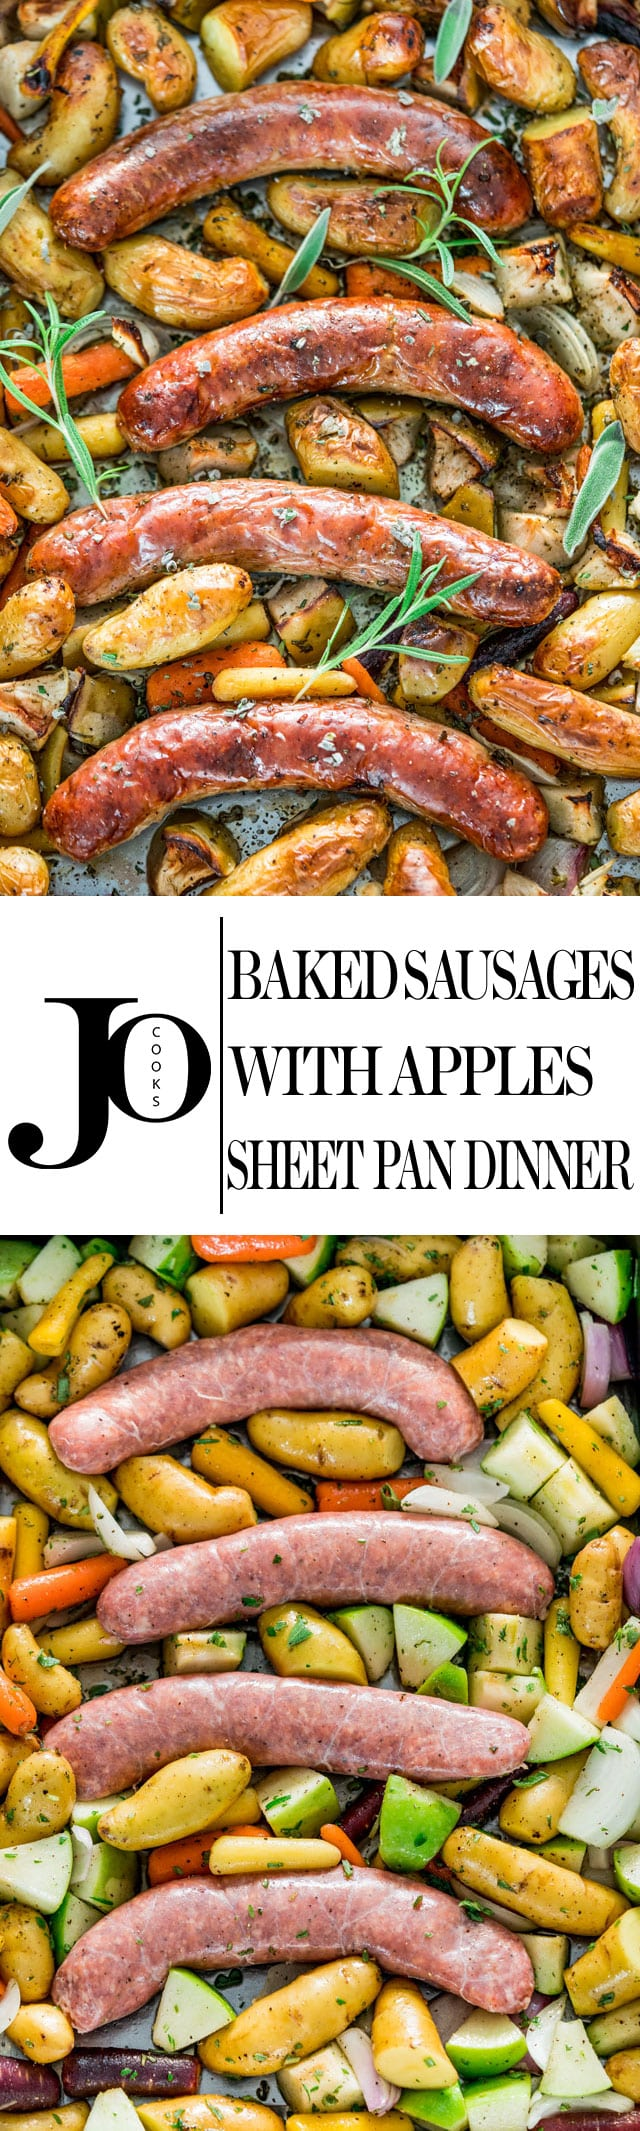 Baked Sausages with Apples Sheet Pan Dinner - these pork sausages are perfectly baked together with apples, fingerling potatoes, baby carrots and lots of fresh herbs, all in one pan making it super easy for cleanup. www.jocooks.com #sheetpandinner